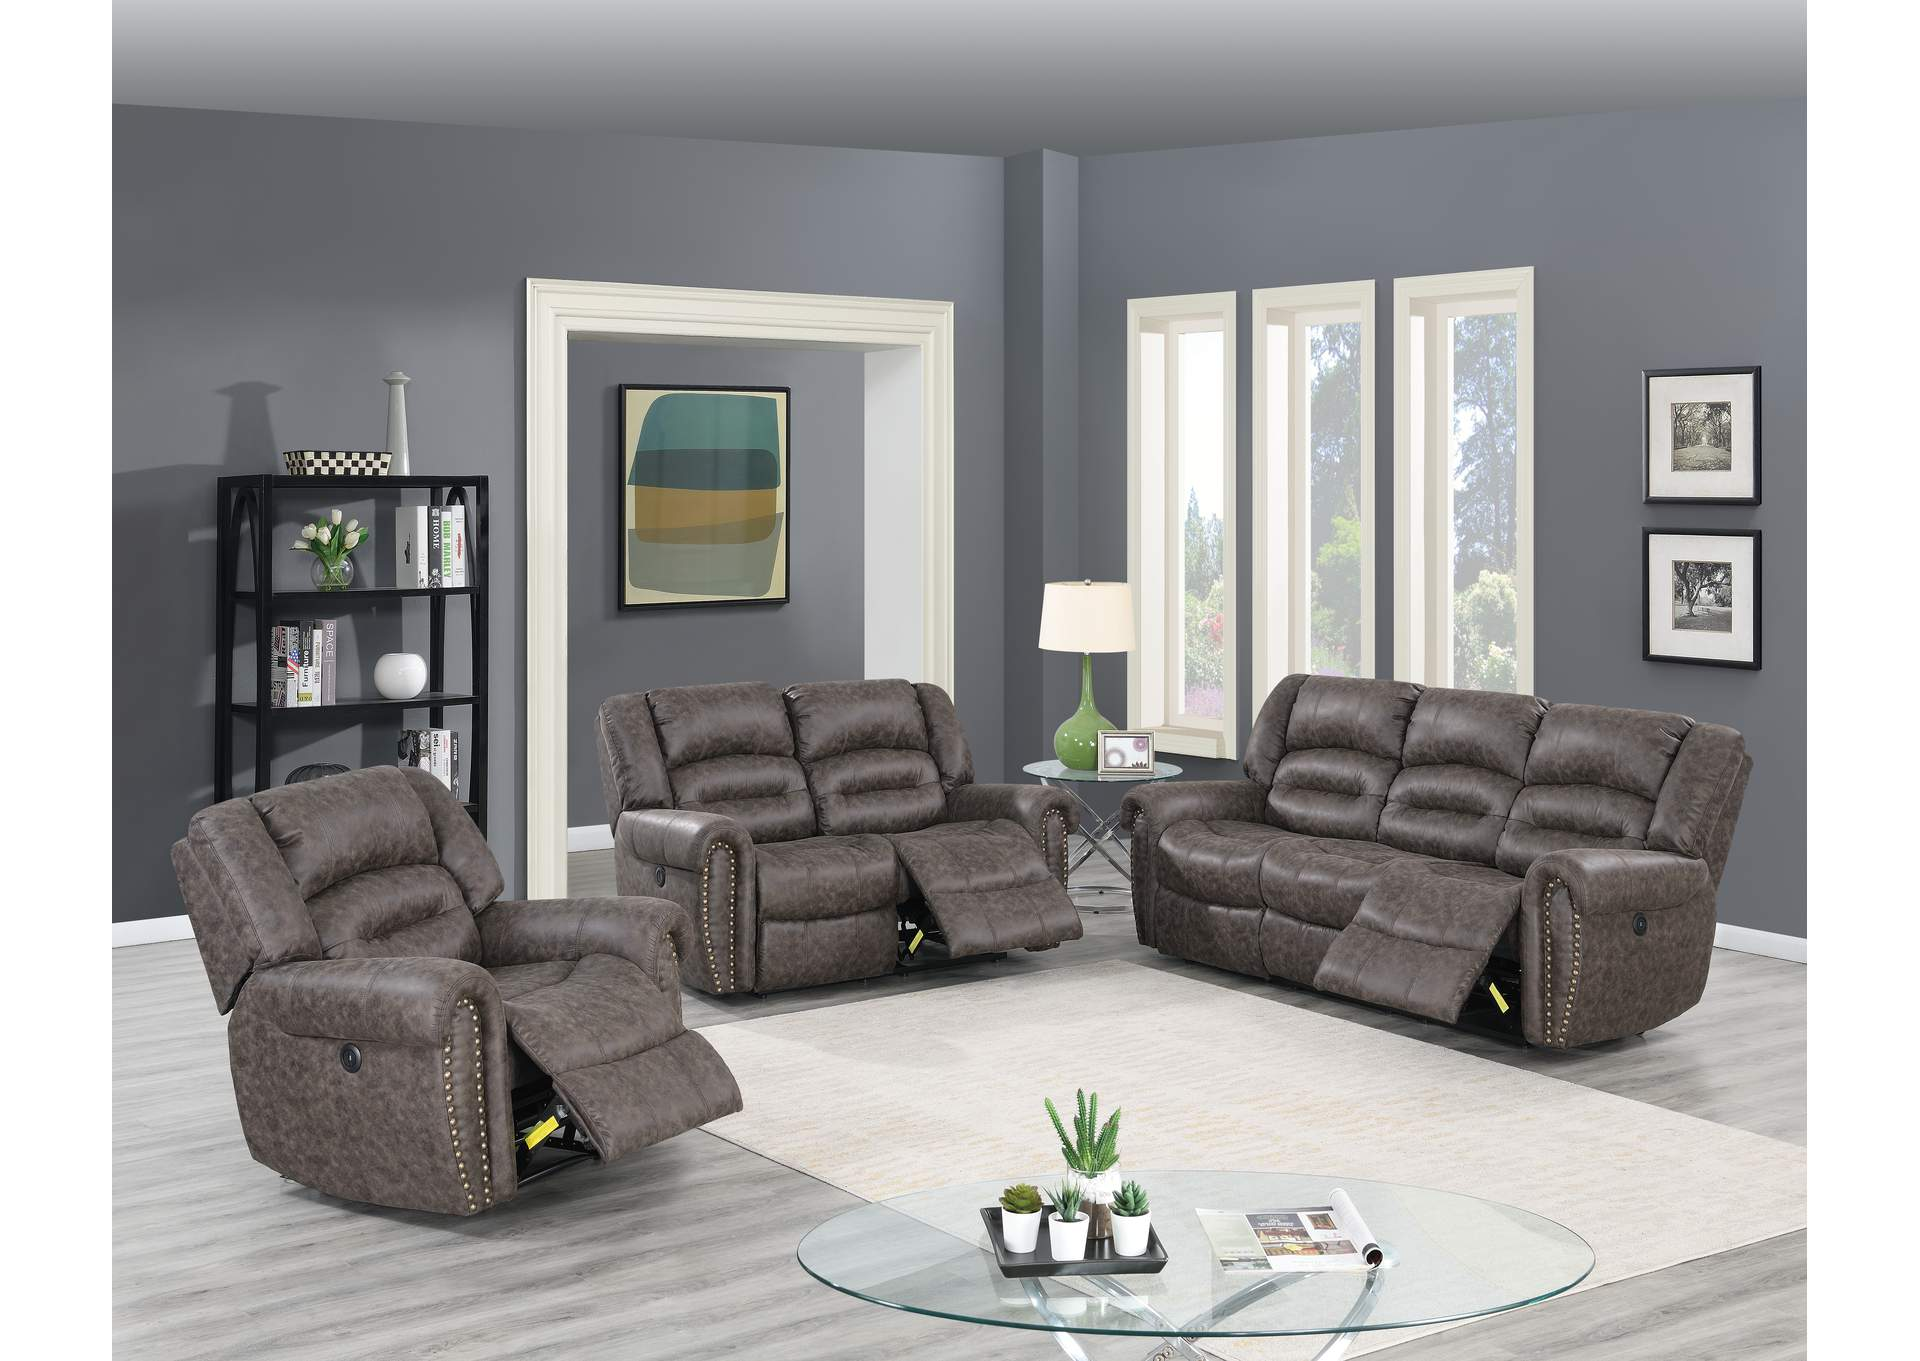 Zoyart Taupe Power Recliner,Poundex